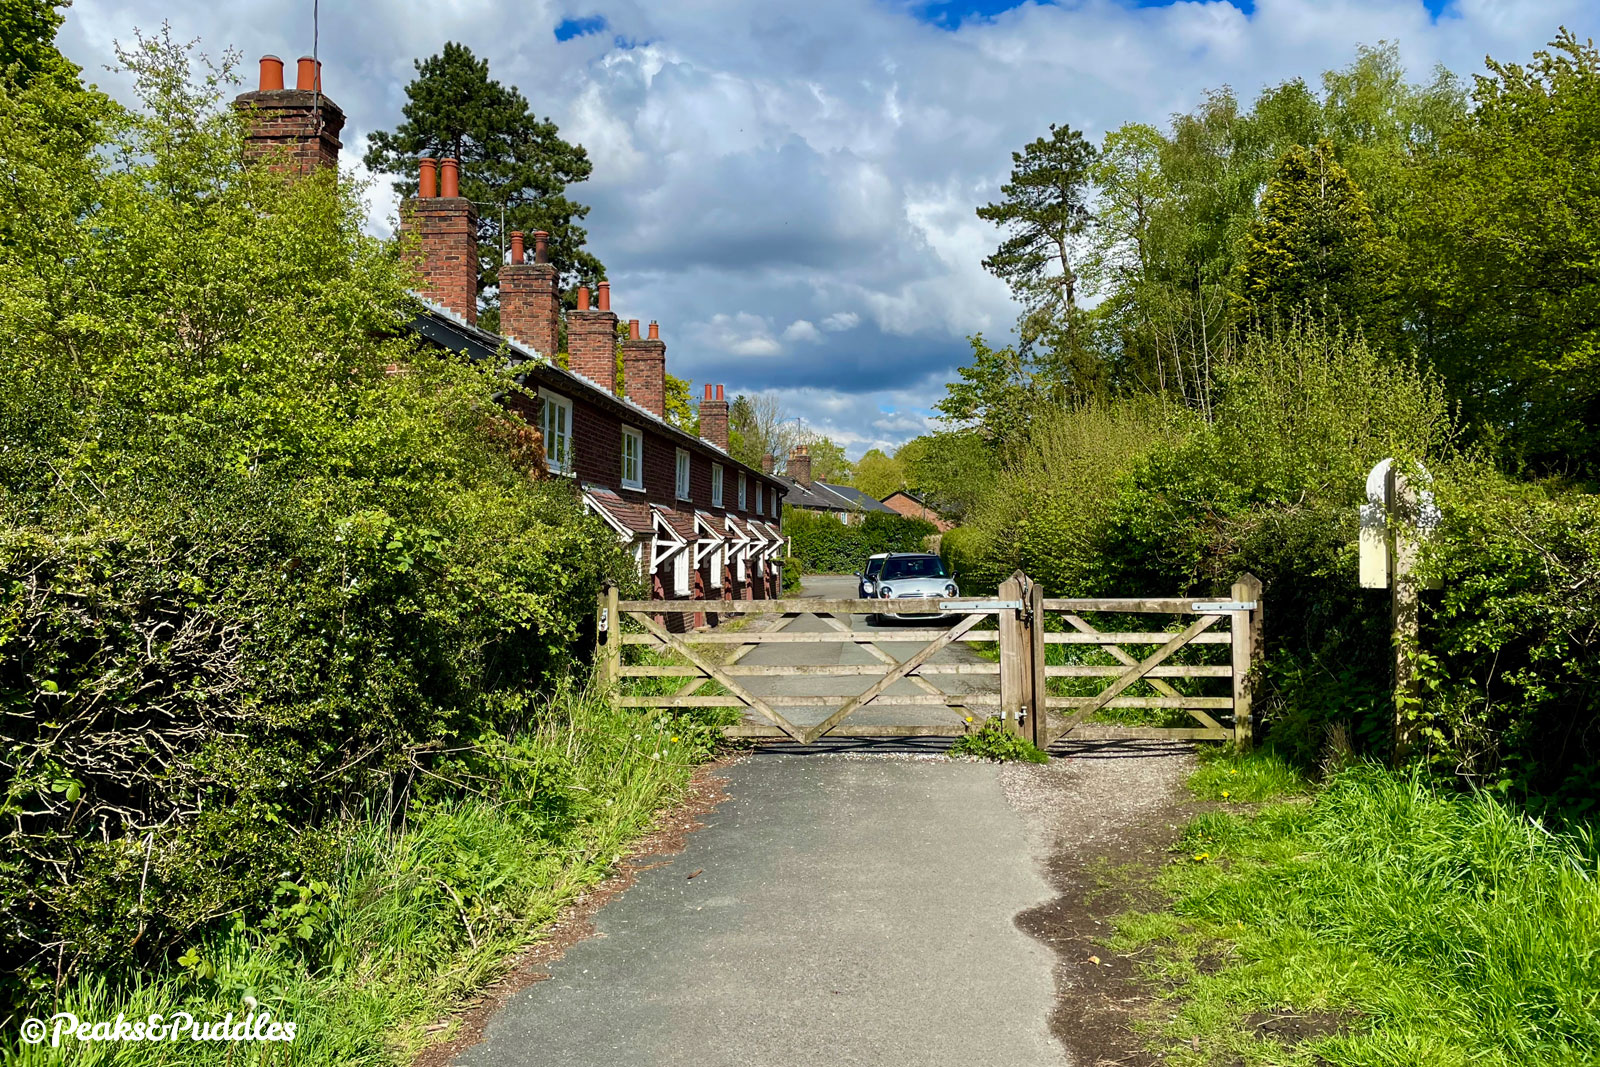 Leaving the Quarry Bank estate and approaching the main Style Road at a row of squat redbrick cottages.